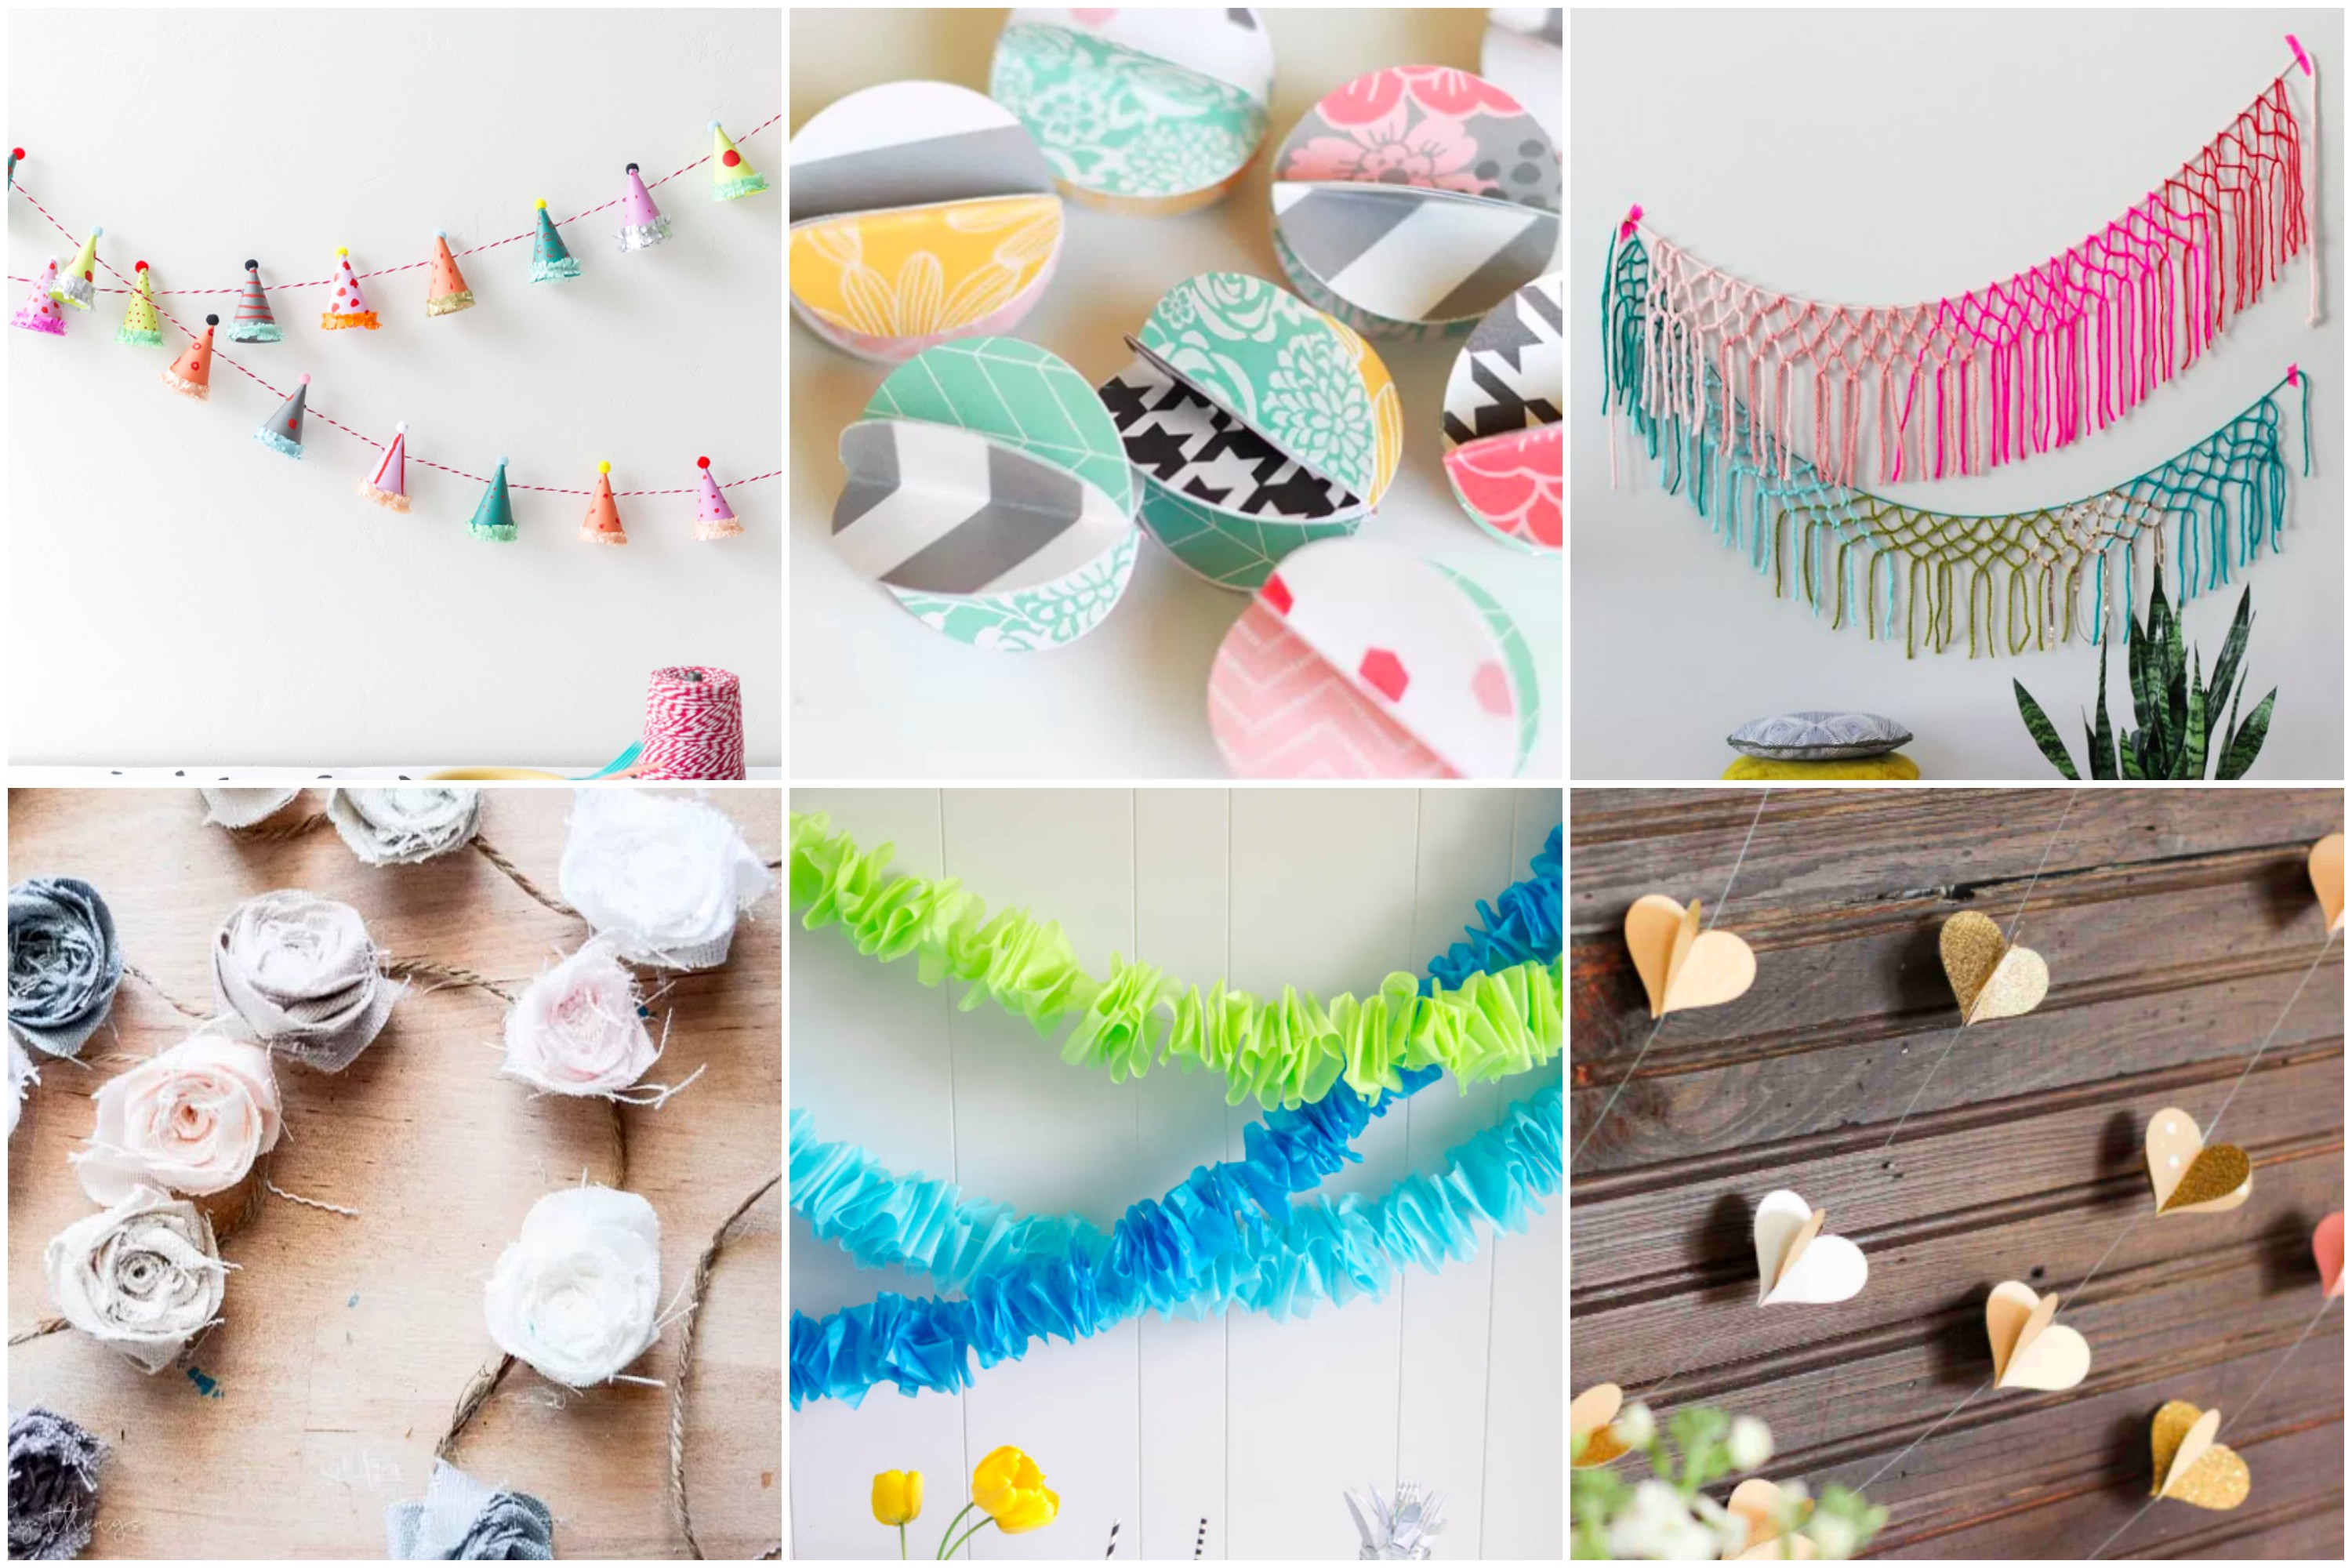 DIY Baby Shower Garland ideas to decorate a super fun DIY baby shower!